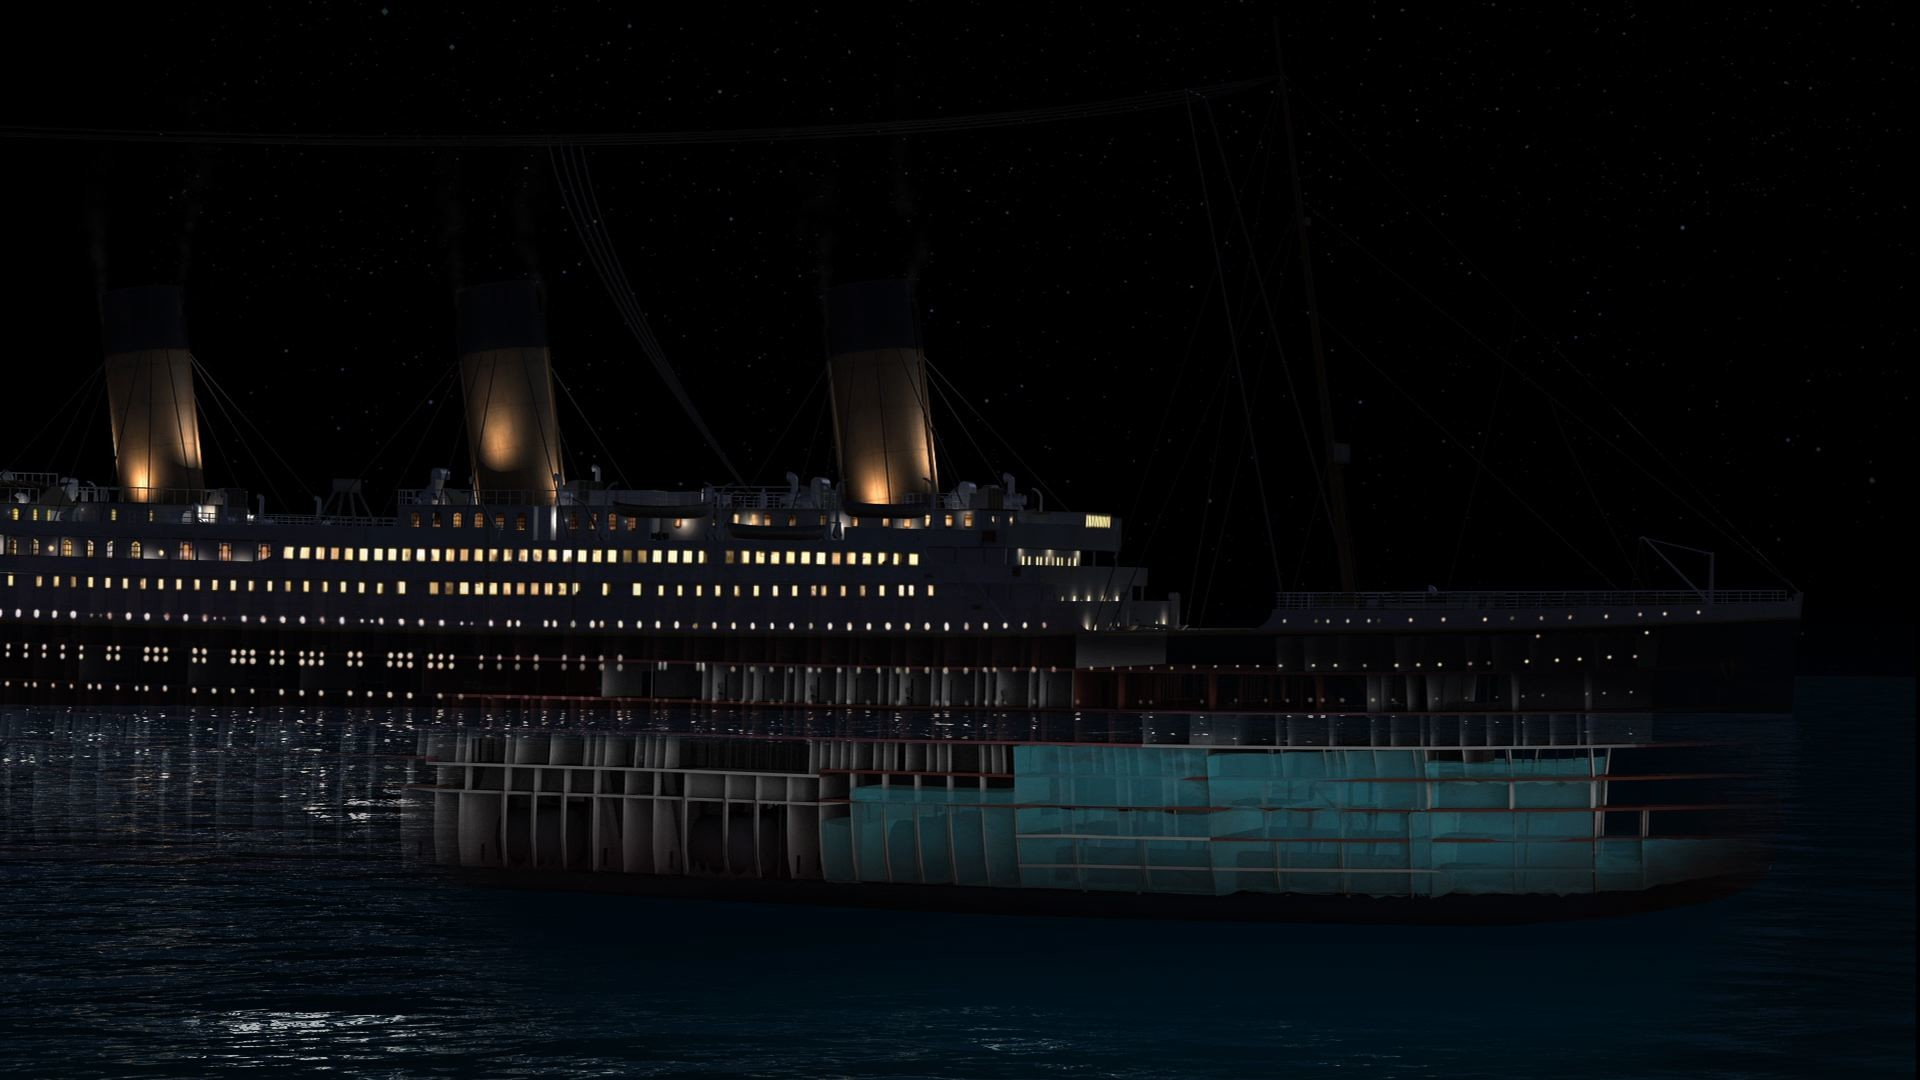 1920x1080 Titanic Sinking CGI - Titanic: 100 Years Video - National Geographic Channel